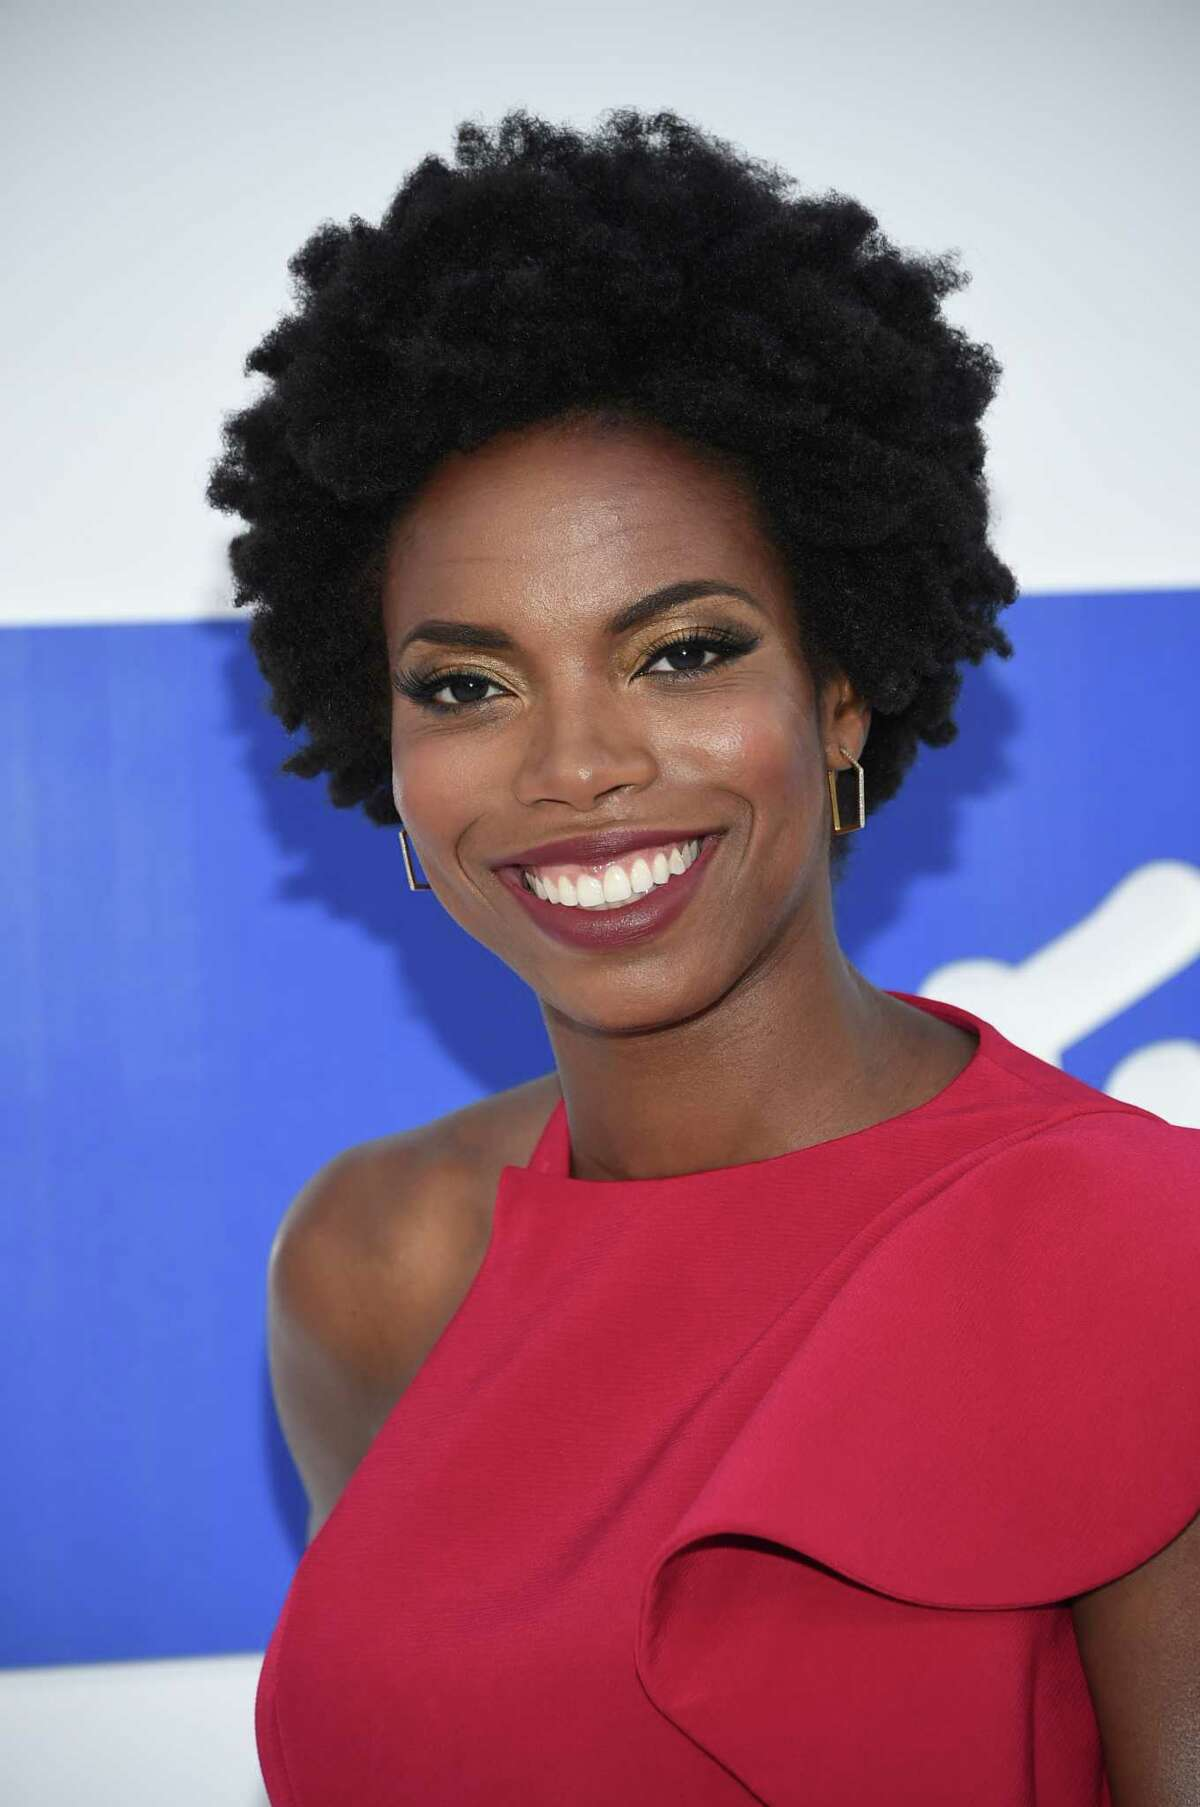 """FILE - In this Aug. 28, 2016 file photo, Sasheer Zamata arrives at the MTV Video Music Awards in New York. Zamata, a former member of the Upright Citizens Brigade who plays a mean Beyonce and Rihanna on Â?""""SNL,Â?"""" is debuting her first special, called Â?""""Pizza Mind,Â?"""" on the internet platform Seeso on Thursday, March 28, 2017. (Photo by Evan Agostini/Invision/AP, File)"""